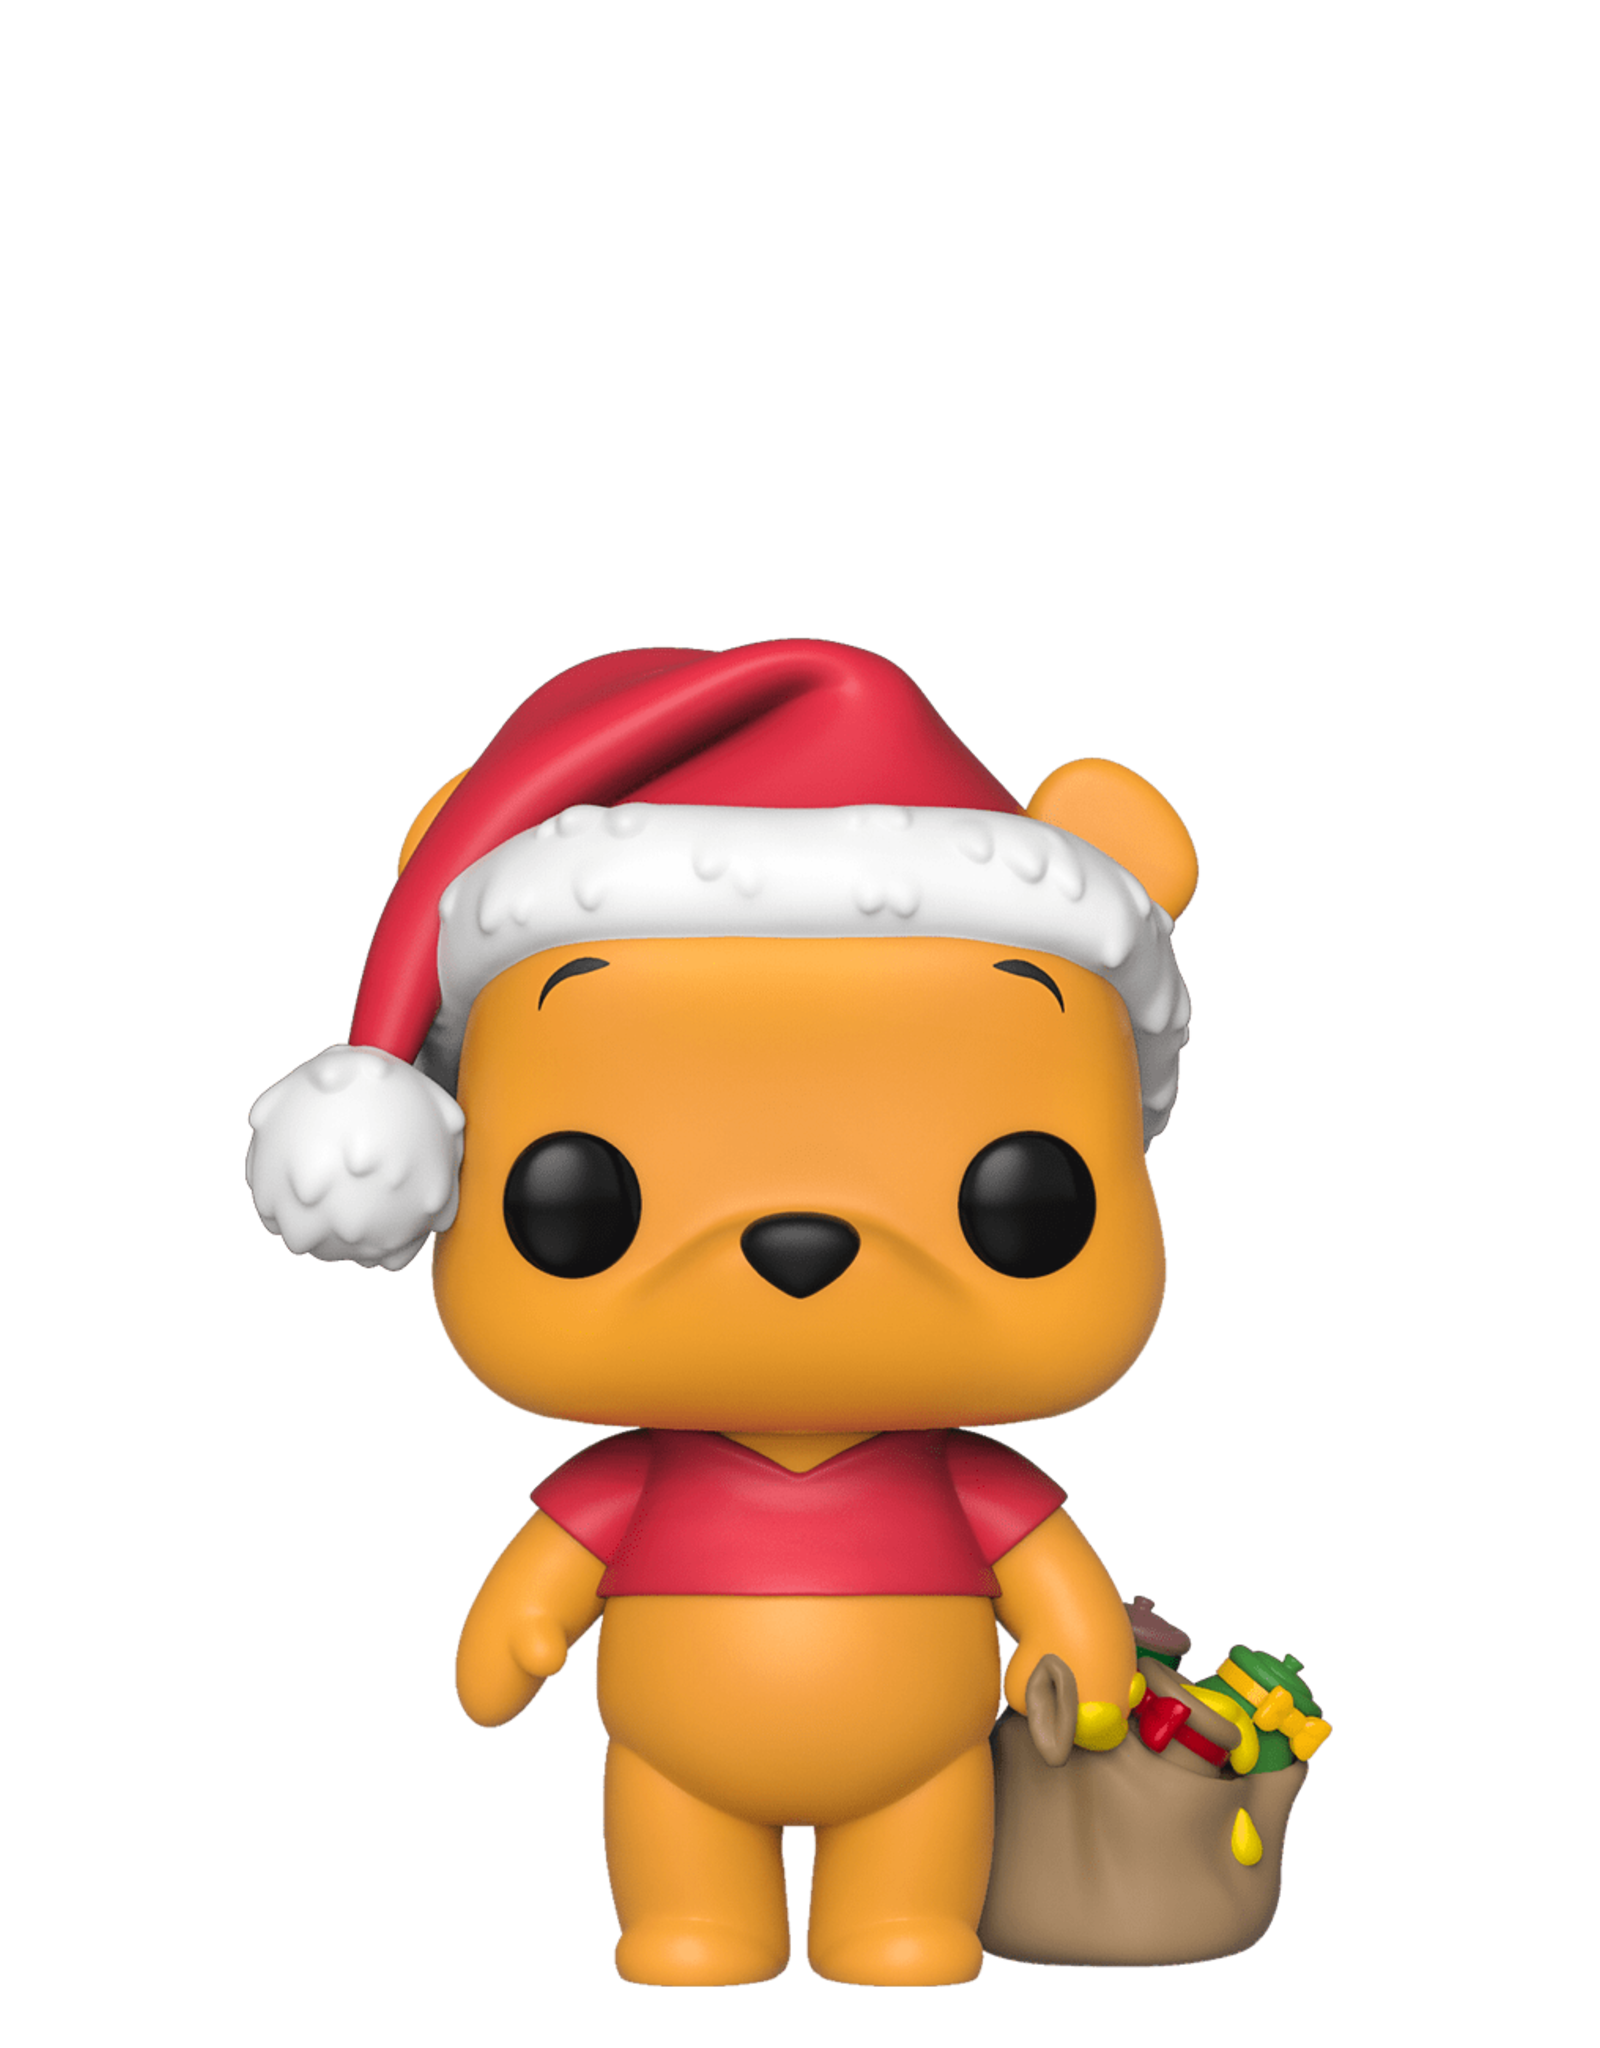 FUNKO POP DISNEY HOLIDAY WINNIE THE POOH VINYL FIG